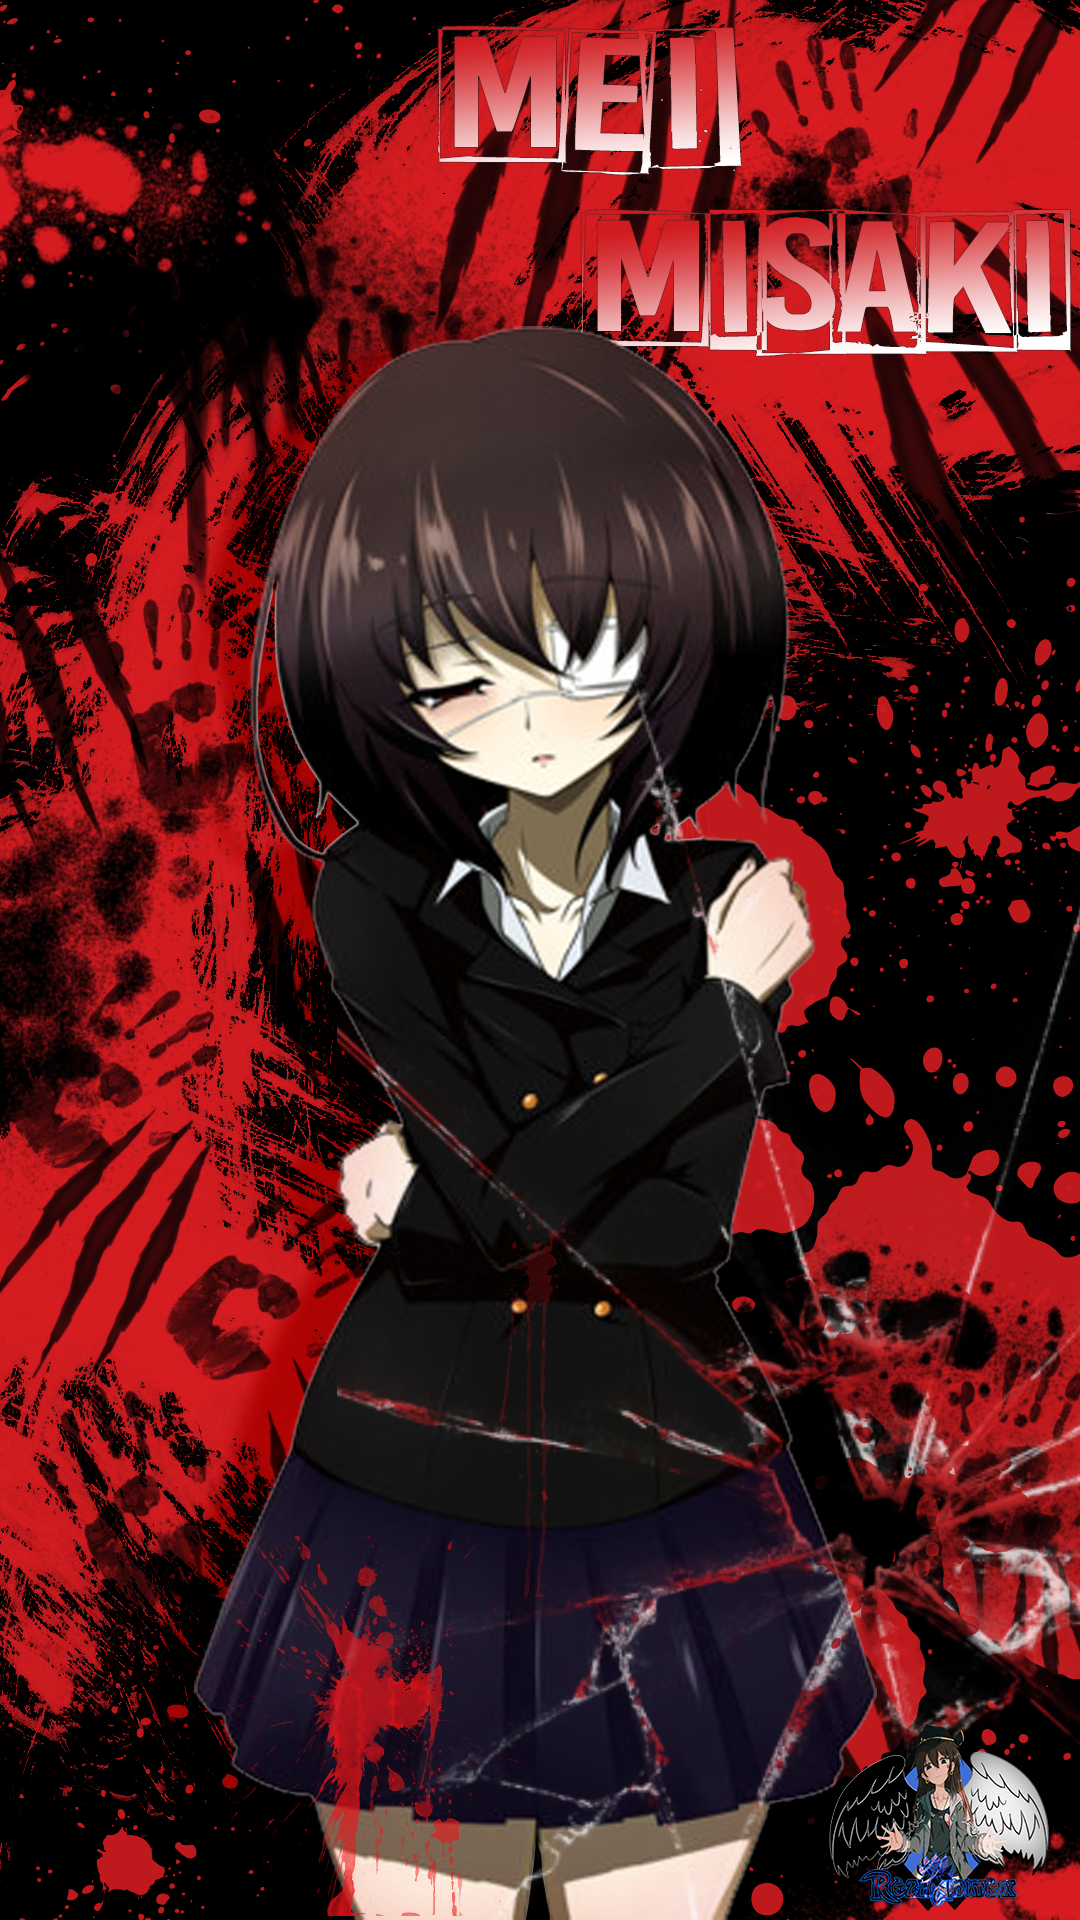 About Picture Character Name Misaki Mei